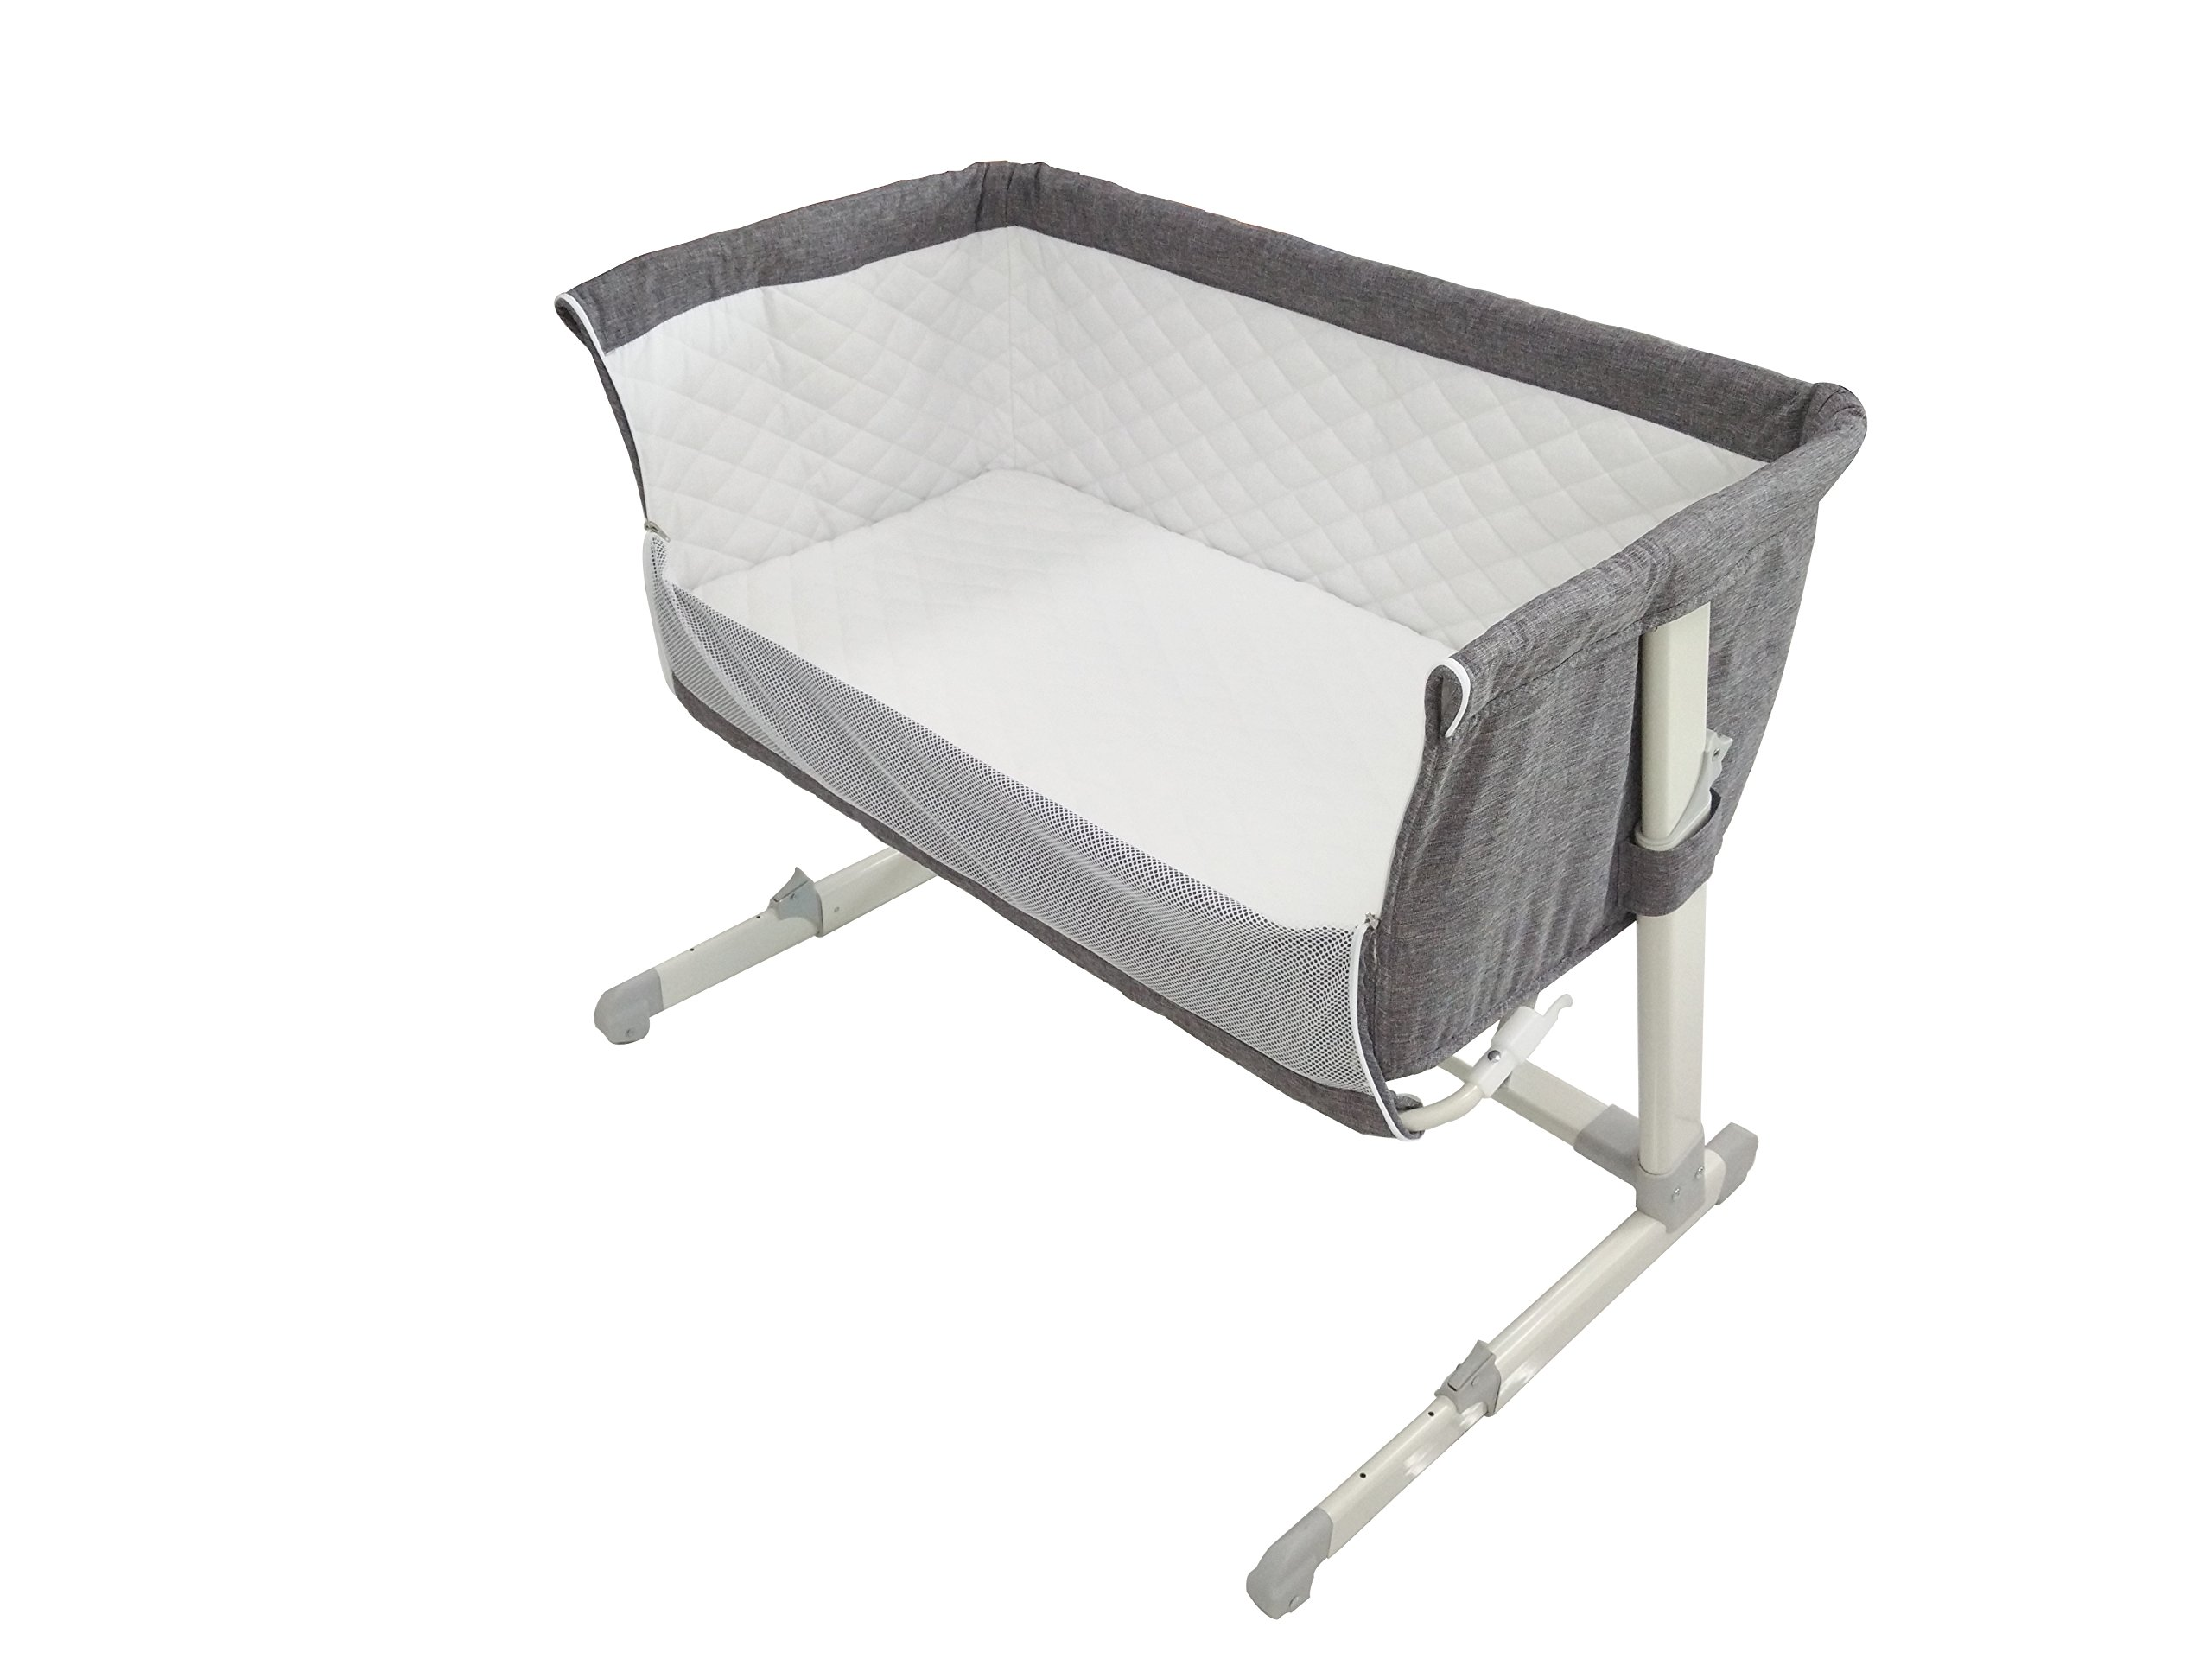 Babylo Cozi Sleeper  Complete with 2 Free Sheets worth £25 Pounds. Removable lining for easy cleaning. Storage Bag Included. European & UK Standard EN1130. Free from Chemicals.  Mattress Fatigue Test BS1877 Certified. Comes fitted with 2 wheels for easy manoeuvrability between rooms. Zip down side panel when fixing to the parents' bed for side-sleeping. Multi-height positions, individually adjustable on each side. Can be set inclined to help with congested breathing and reflux. Use from birth to 9kgs. Stop using when child can sit, kneel or pull themselves up unaided.  Fits both frame and divan beds as the design allows the crib to move flush with bed. Two fastening clip-on straps to hold crib snug against bed. As baby grows you can move it away from the bed and use as a normal crib. Removable and washable lining. Soft removable mattress included. 2 free sheets included. Soft quilted sides with mesh for visibility and ventilation. Easy manoeuvrability, assembly and use. Mattress size 87lx46wx4d. Handy storage bag for transportation. 1